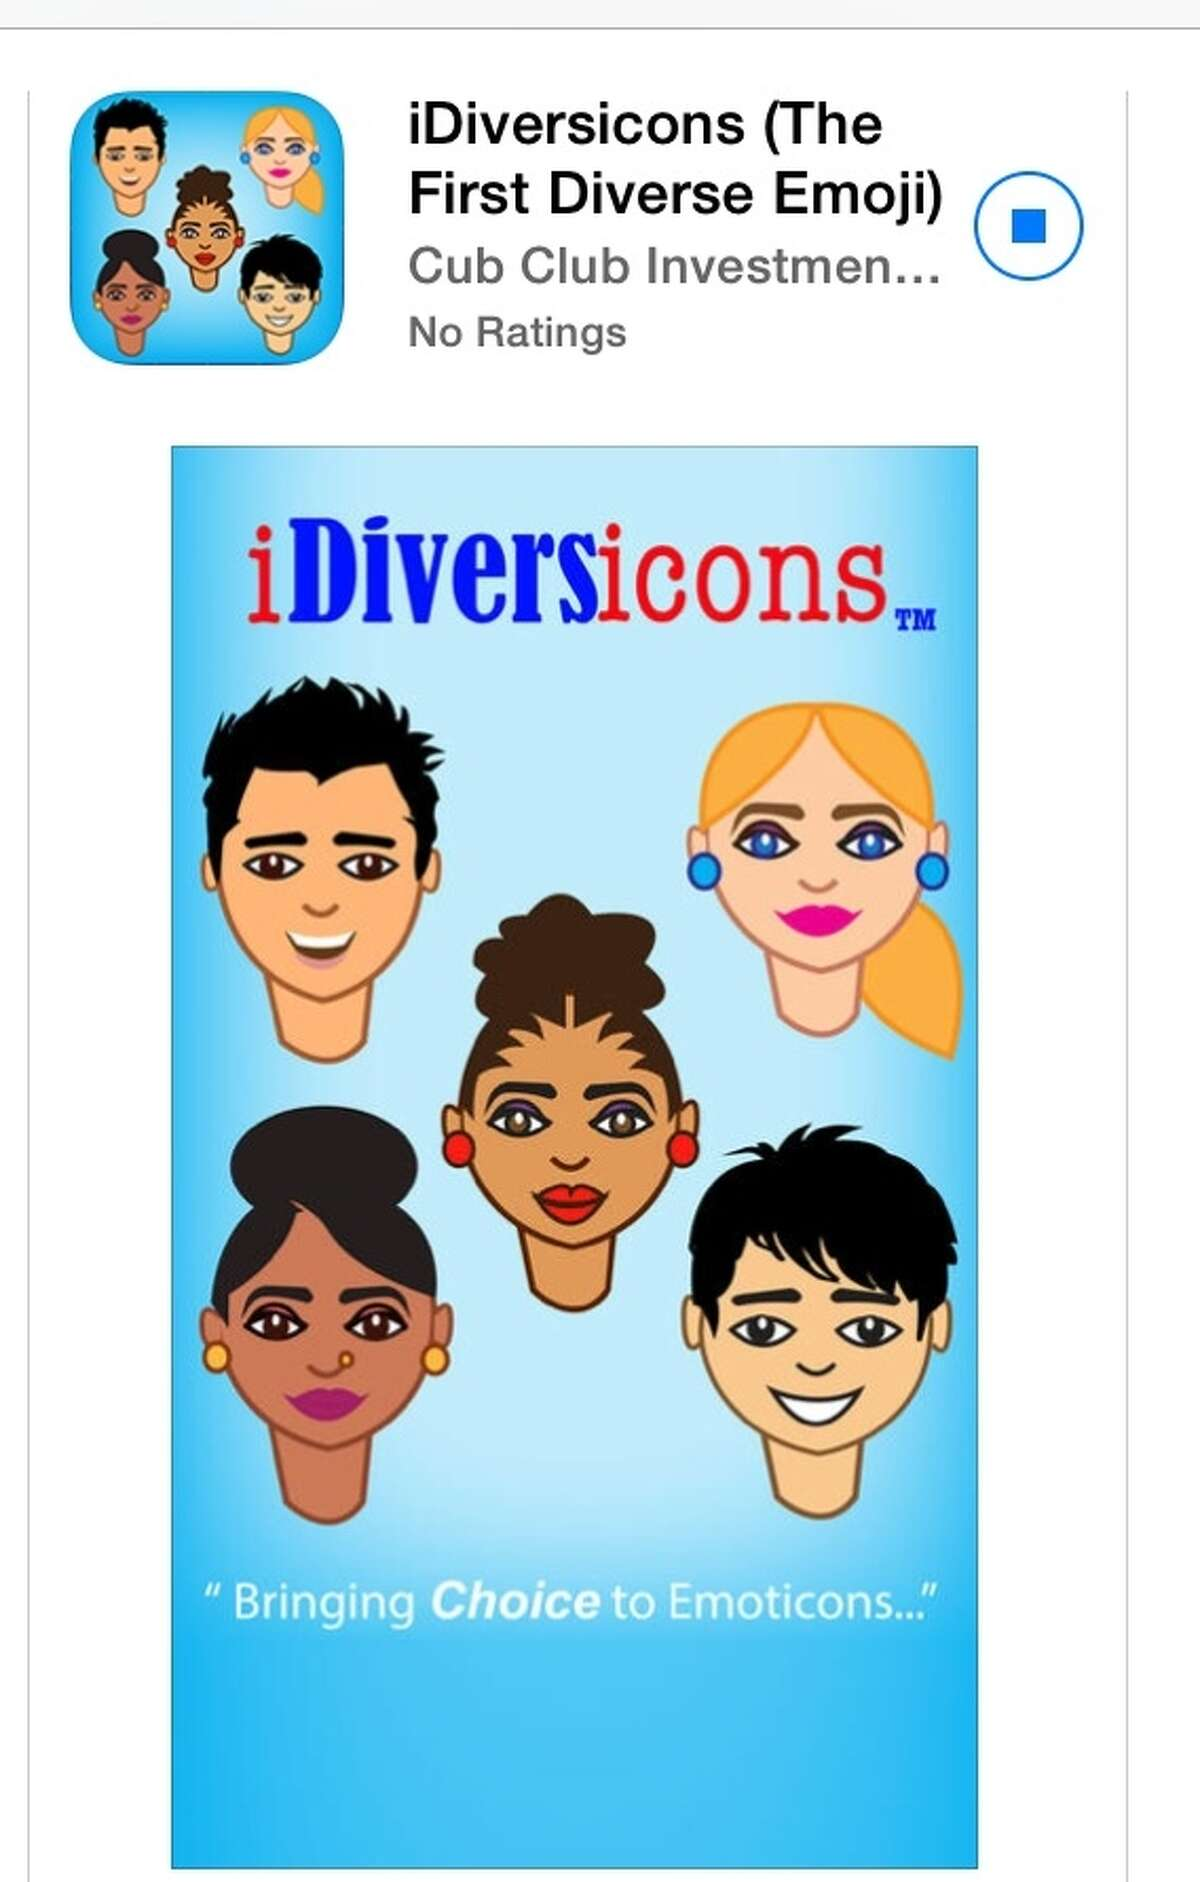 iDiversicons are currently available via their app in Apple's app store or for Android in GooglePlay. Click through for a look at some of their unique icons.